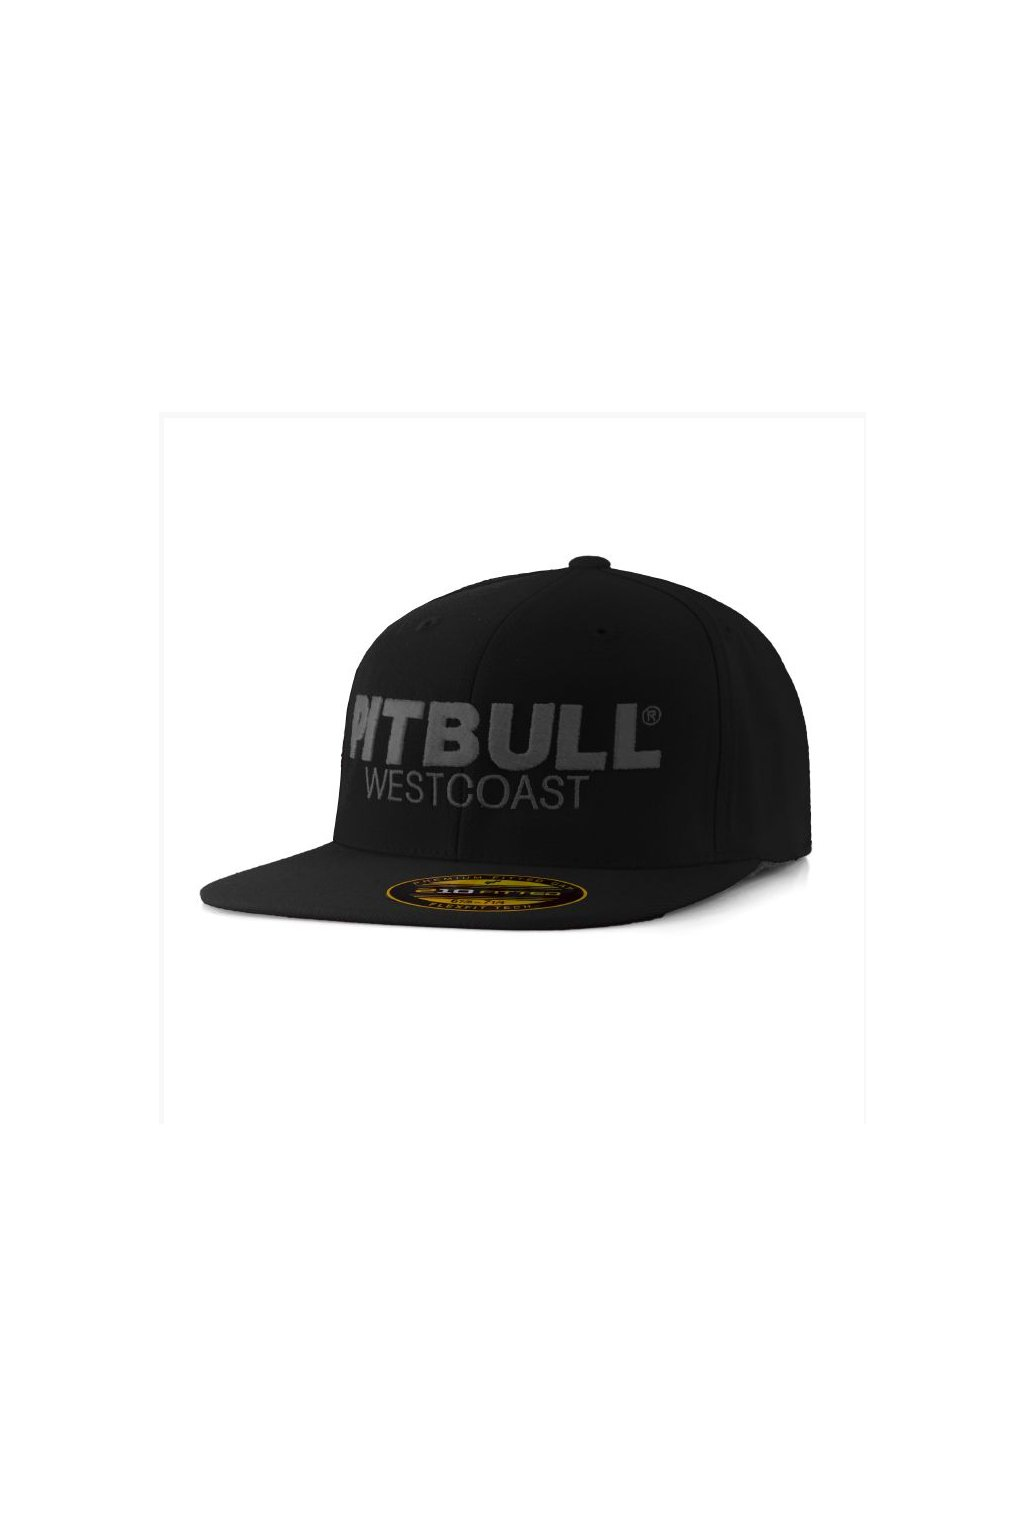 2999 pitbull west coast ksiltovka full cap flat tnt cerna